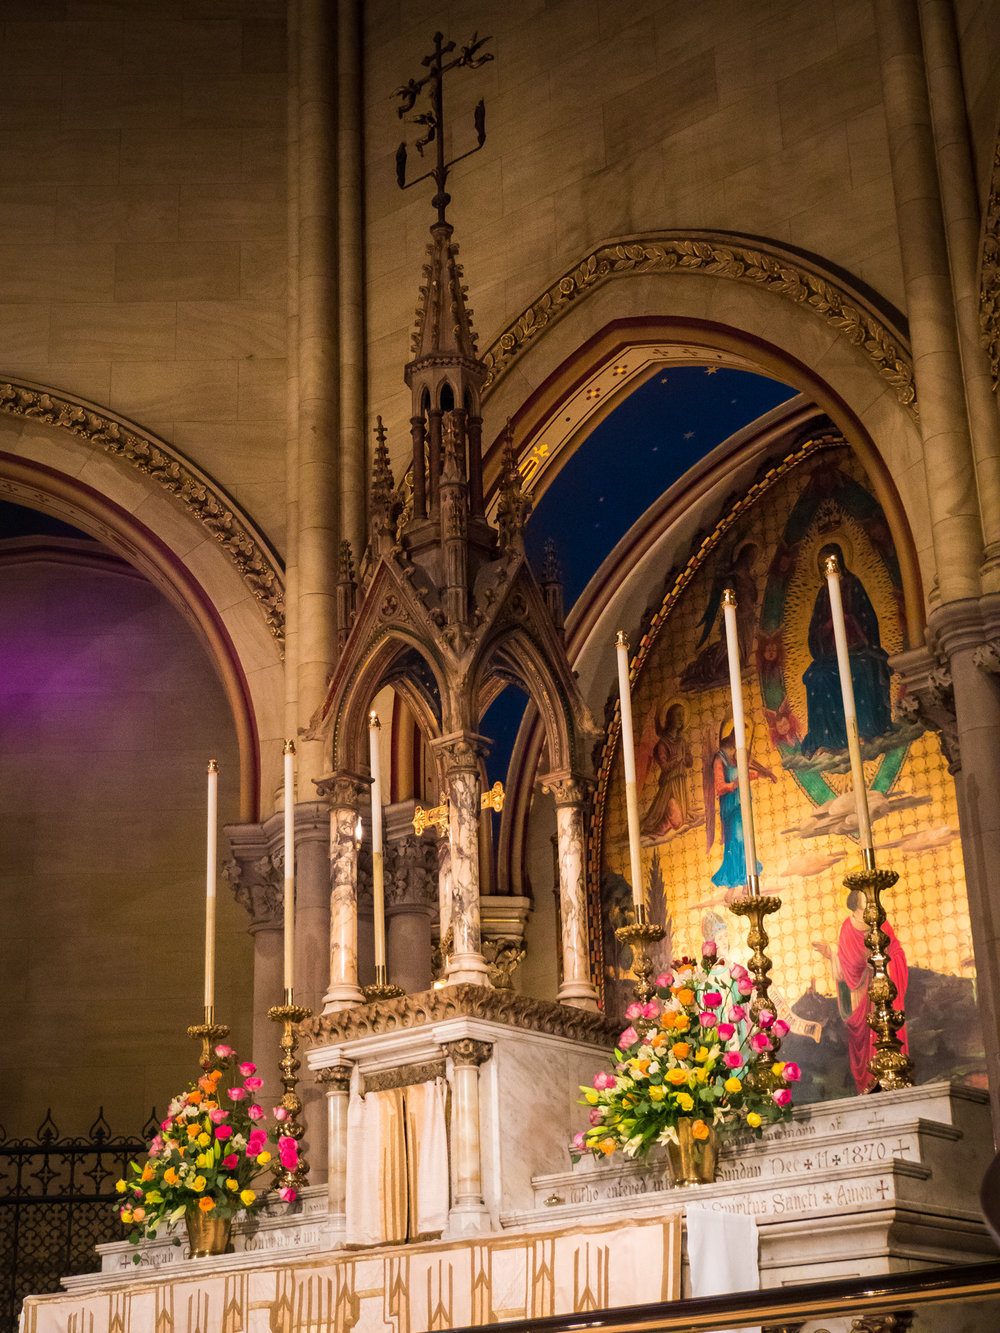 The High Altar, Sunday, April 22, 2018   Photo by Ricardo Gomez